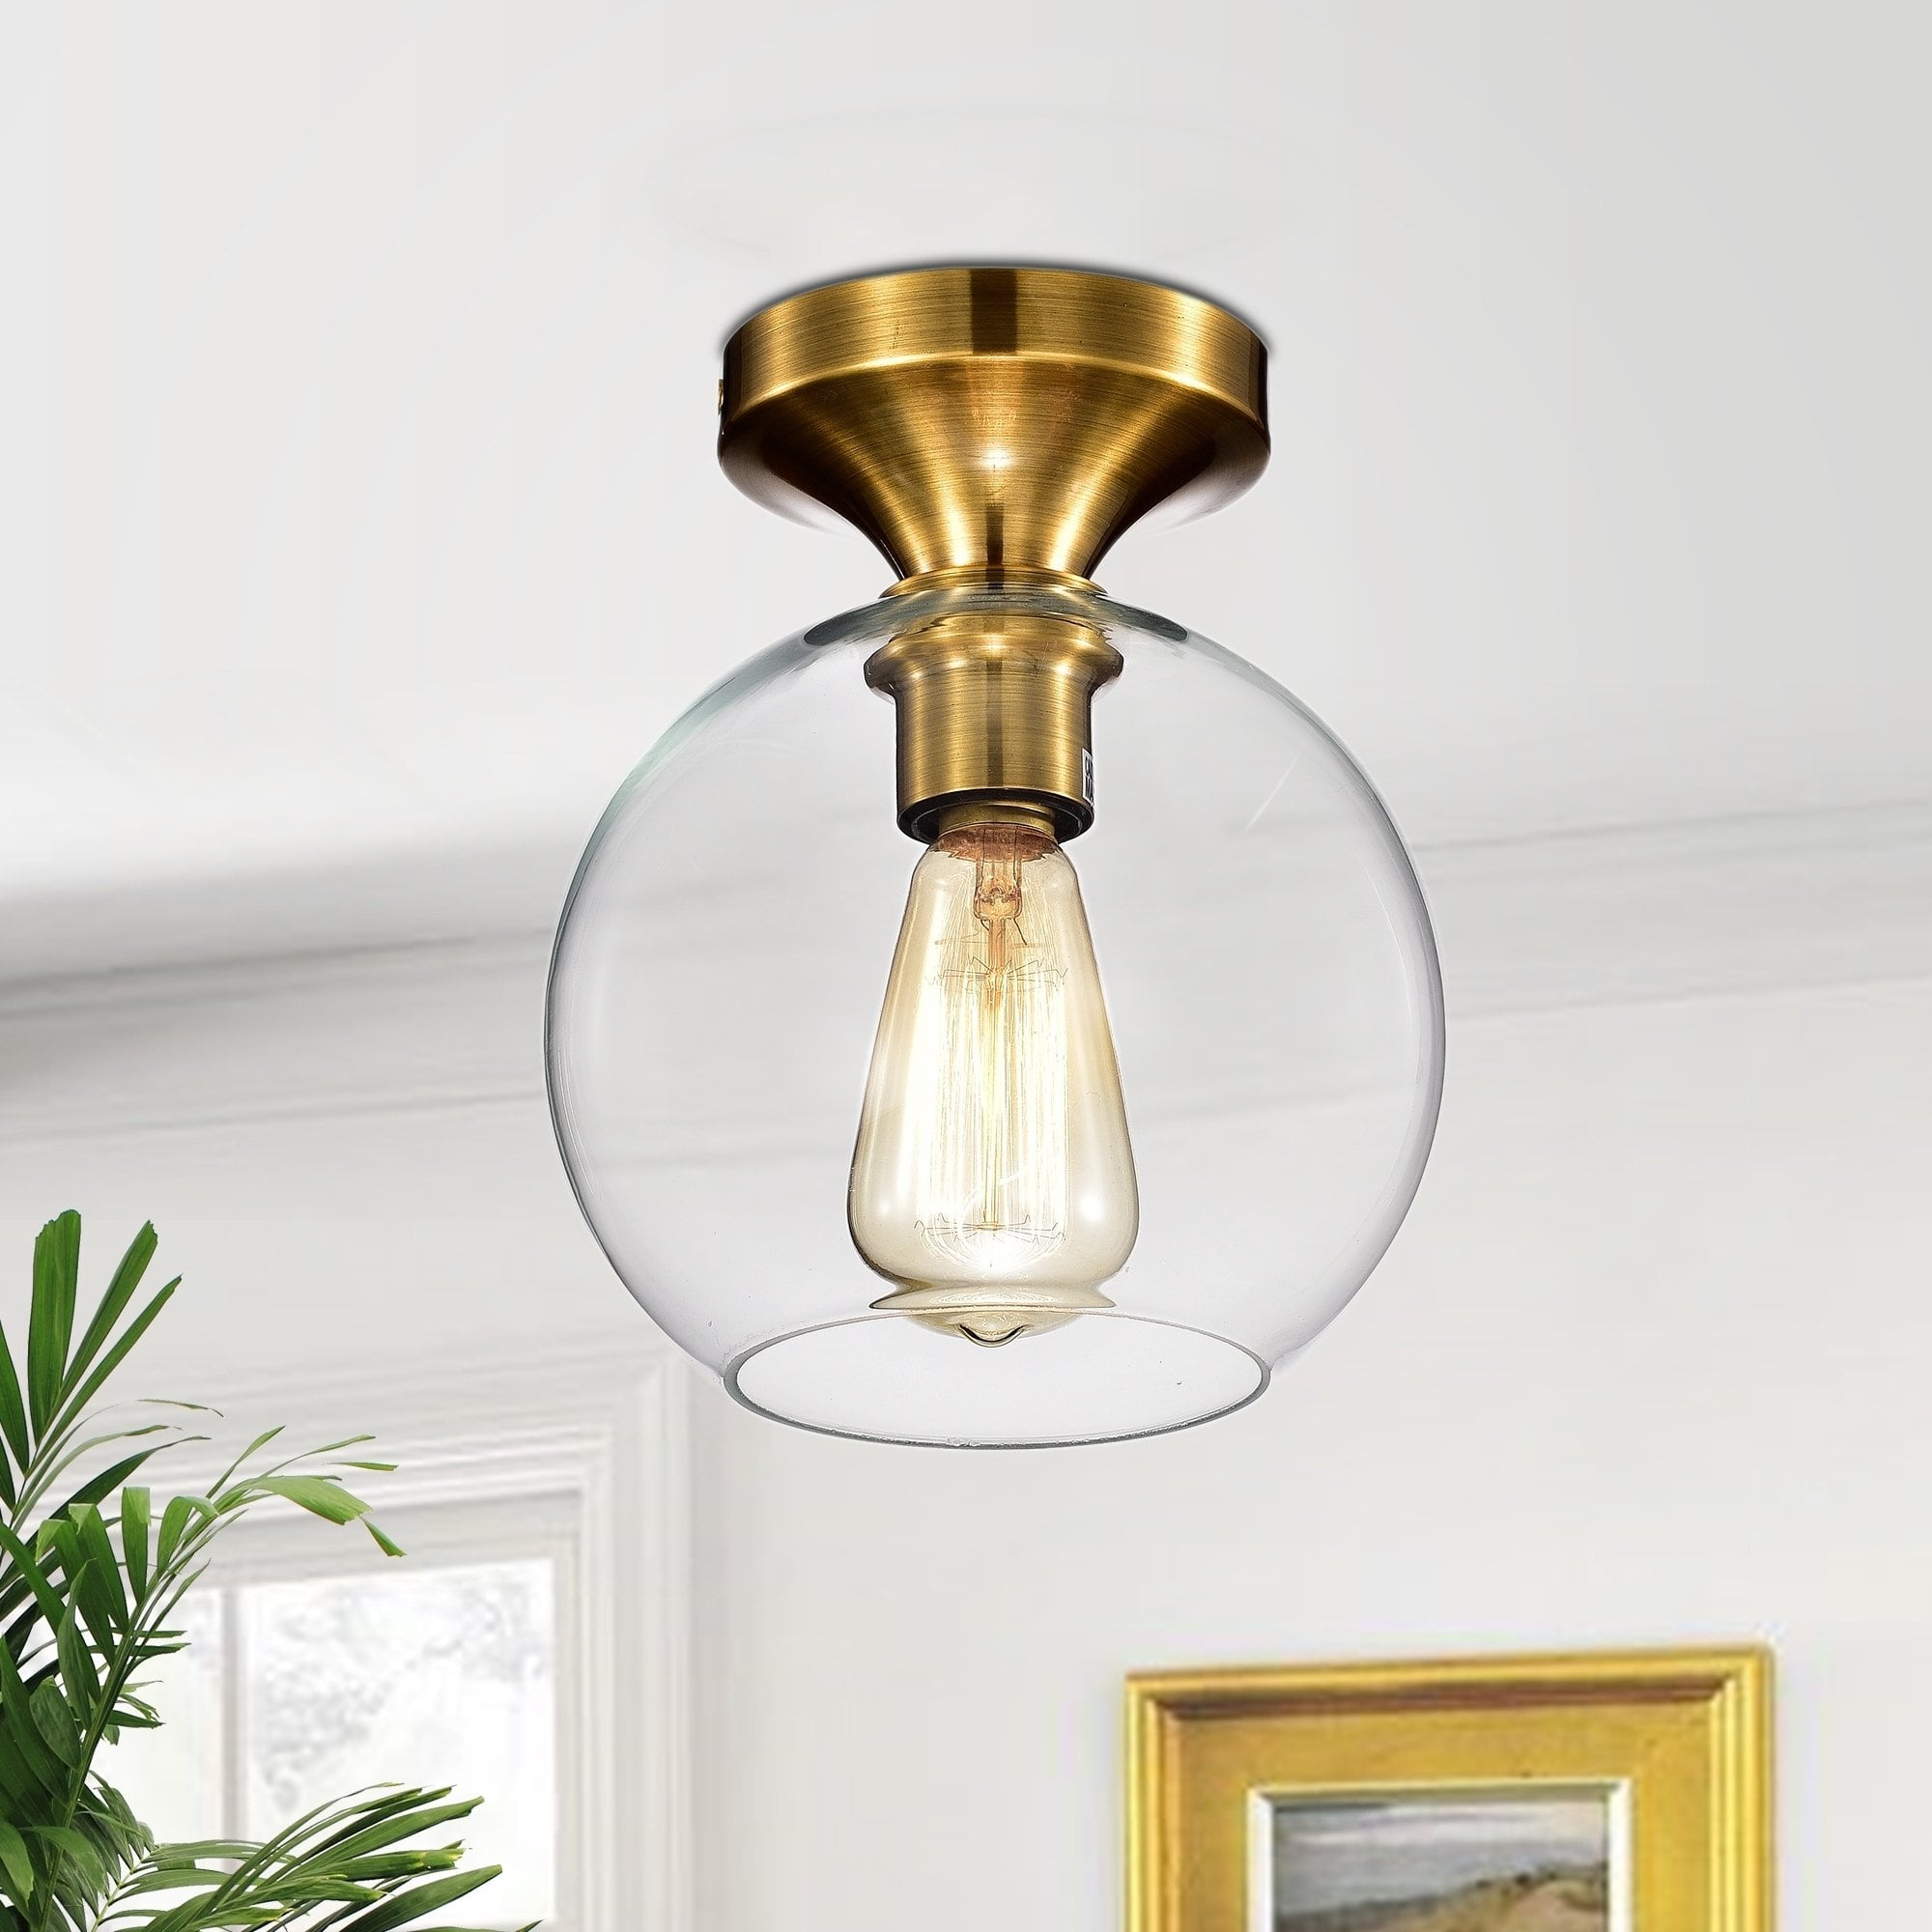 Gorden 1 Light Satin Gold Flushmount Ceiling Lamp Warehouse Of Tiffany Ceiling Lamp Light Satin Light